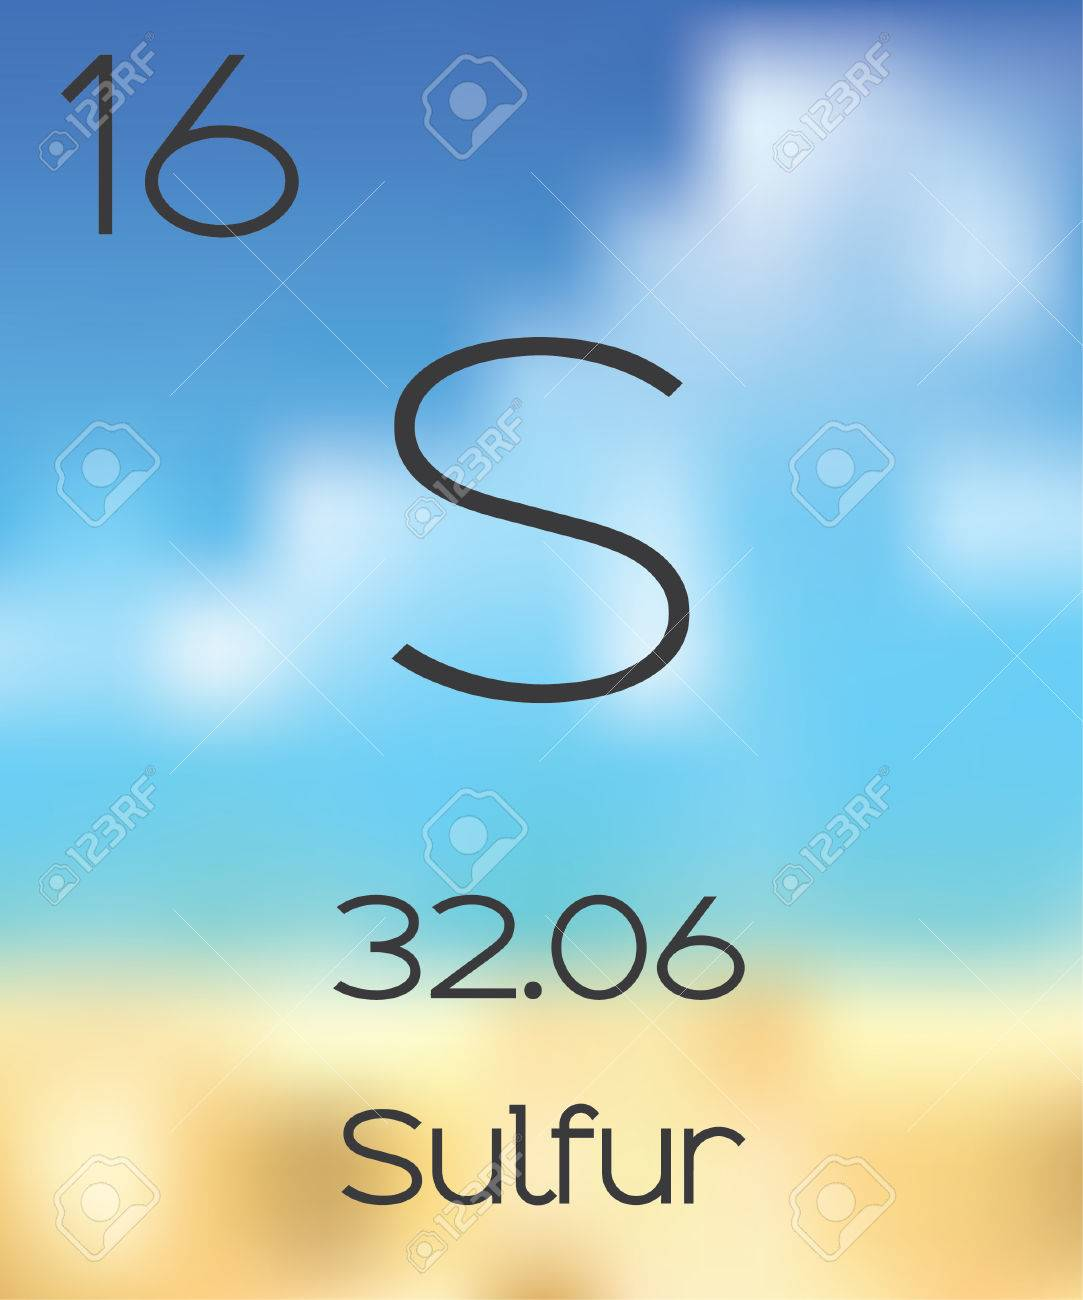 Sulfur on periodic table choice image periodic table images sulfur on periodic table gallery periodic table images sulfur on periodic table image collections periodic table gamestrikefo Image collections